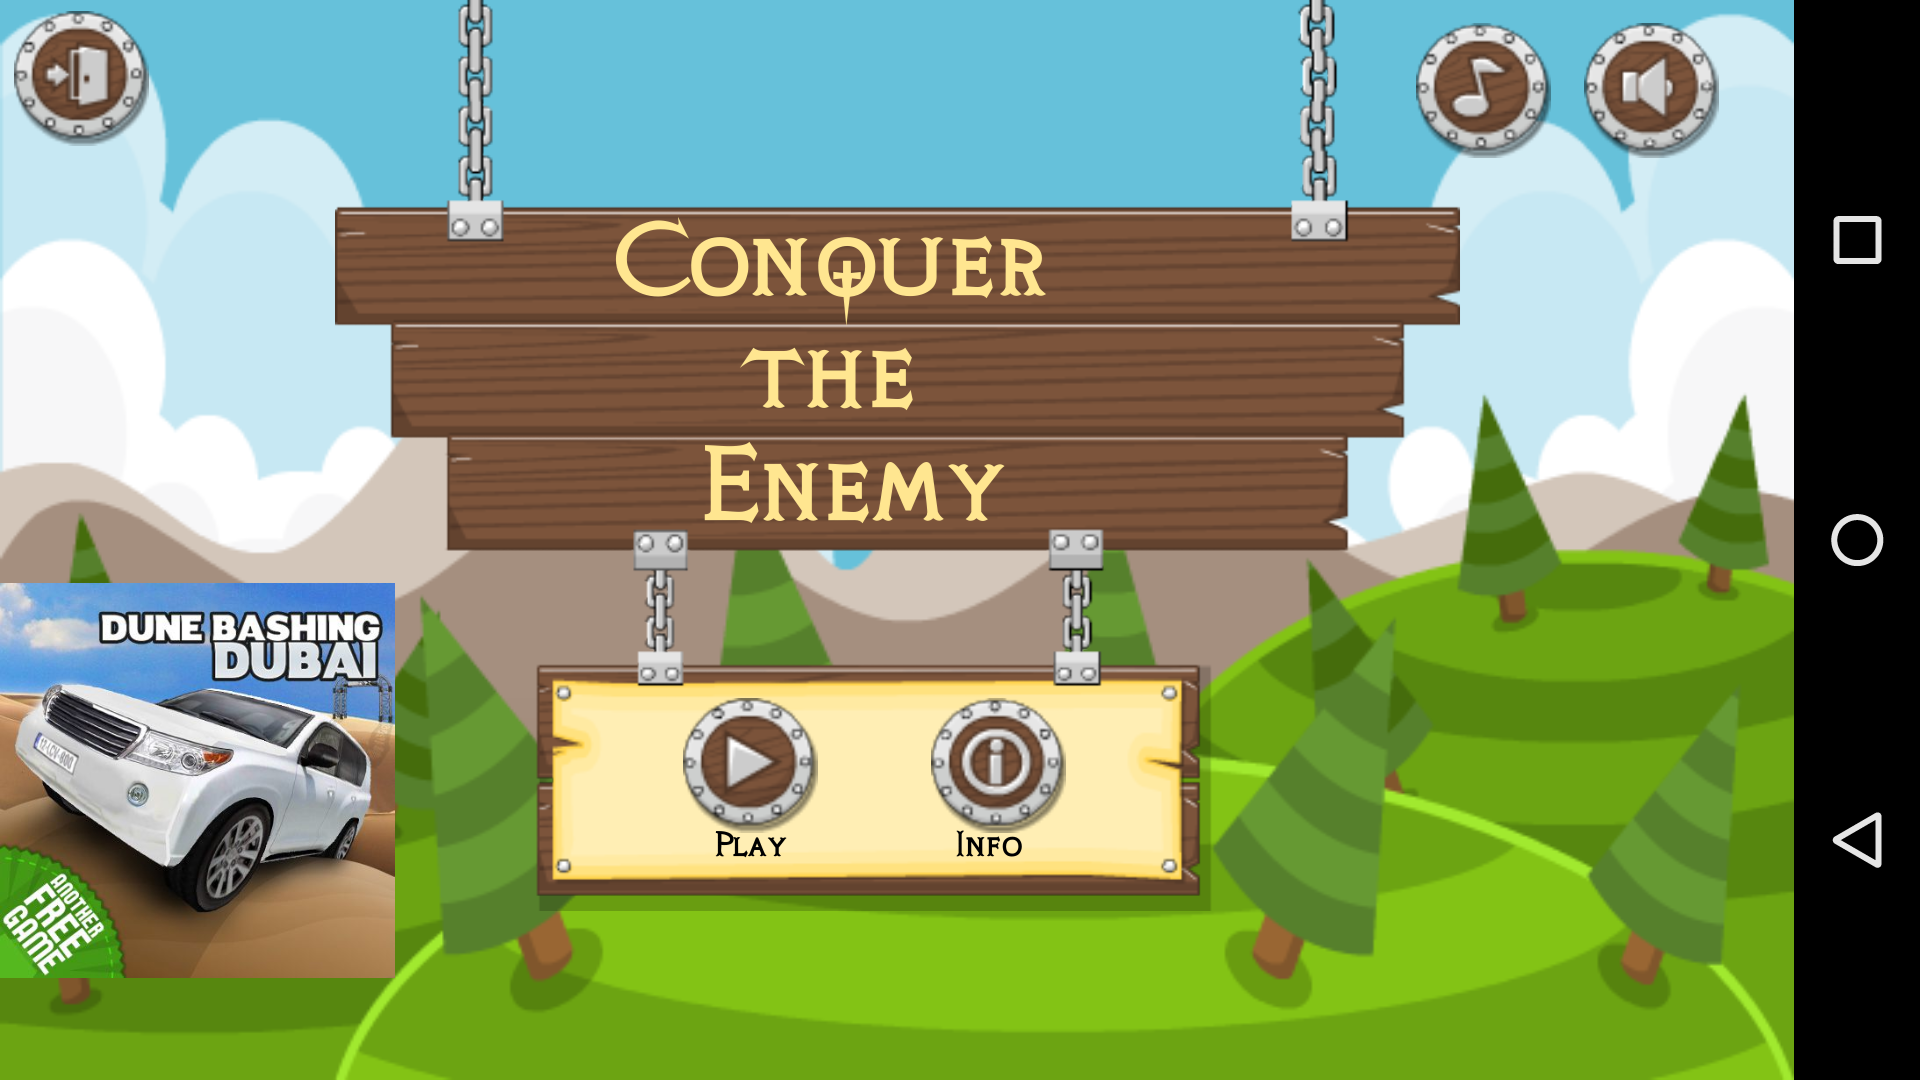 Conquer the enemy